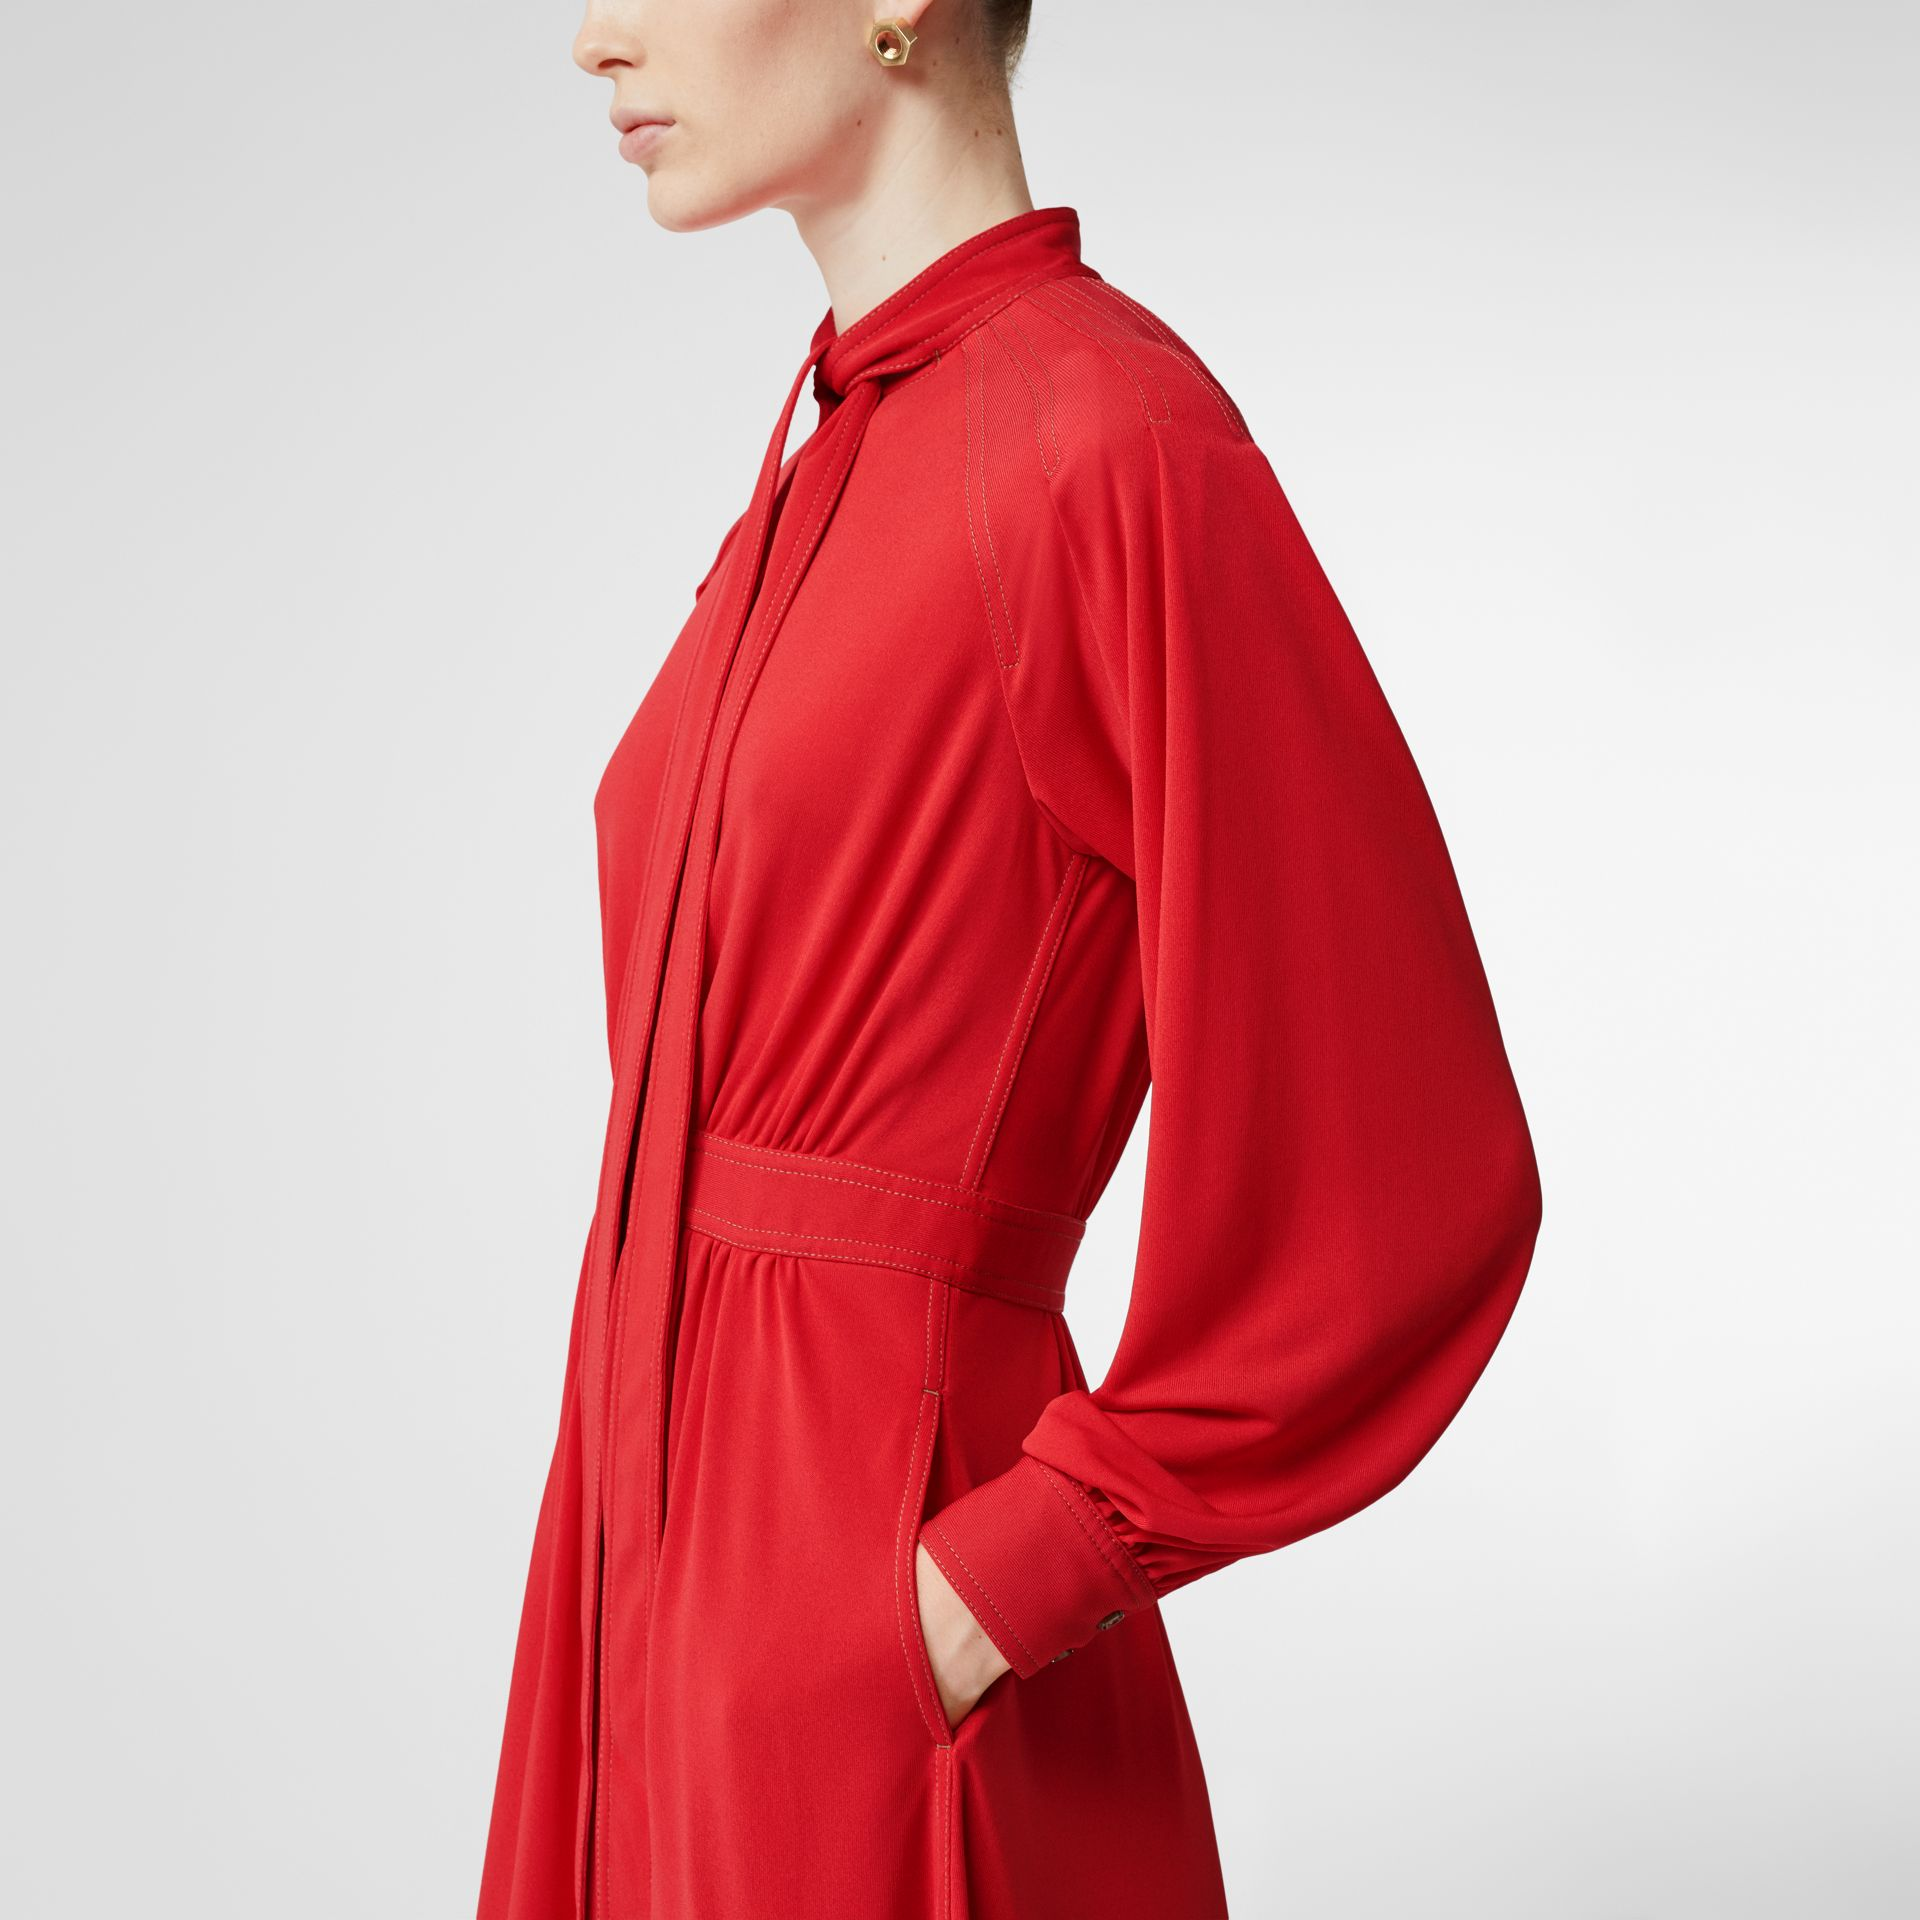 Topstitch Detail Jersey Tie-neck Dress in Bright Red - Women | Burberry Singapore - gallery image 1